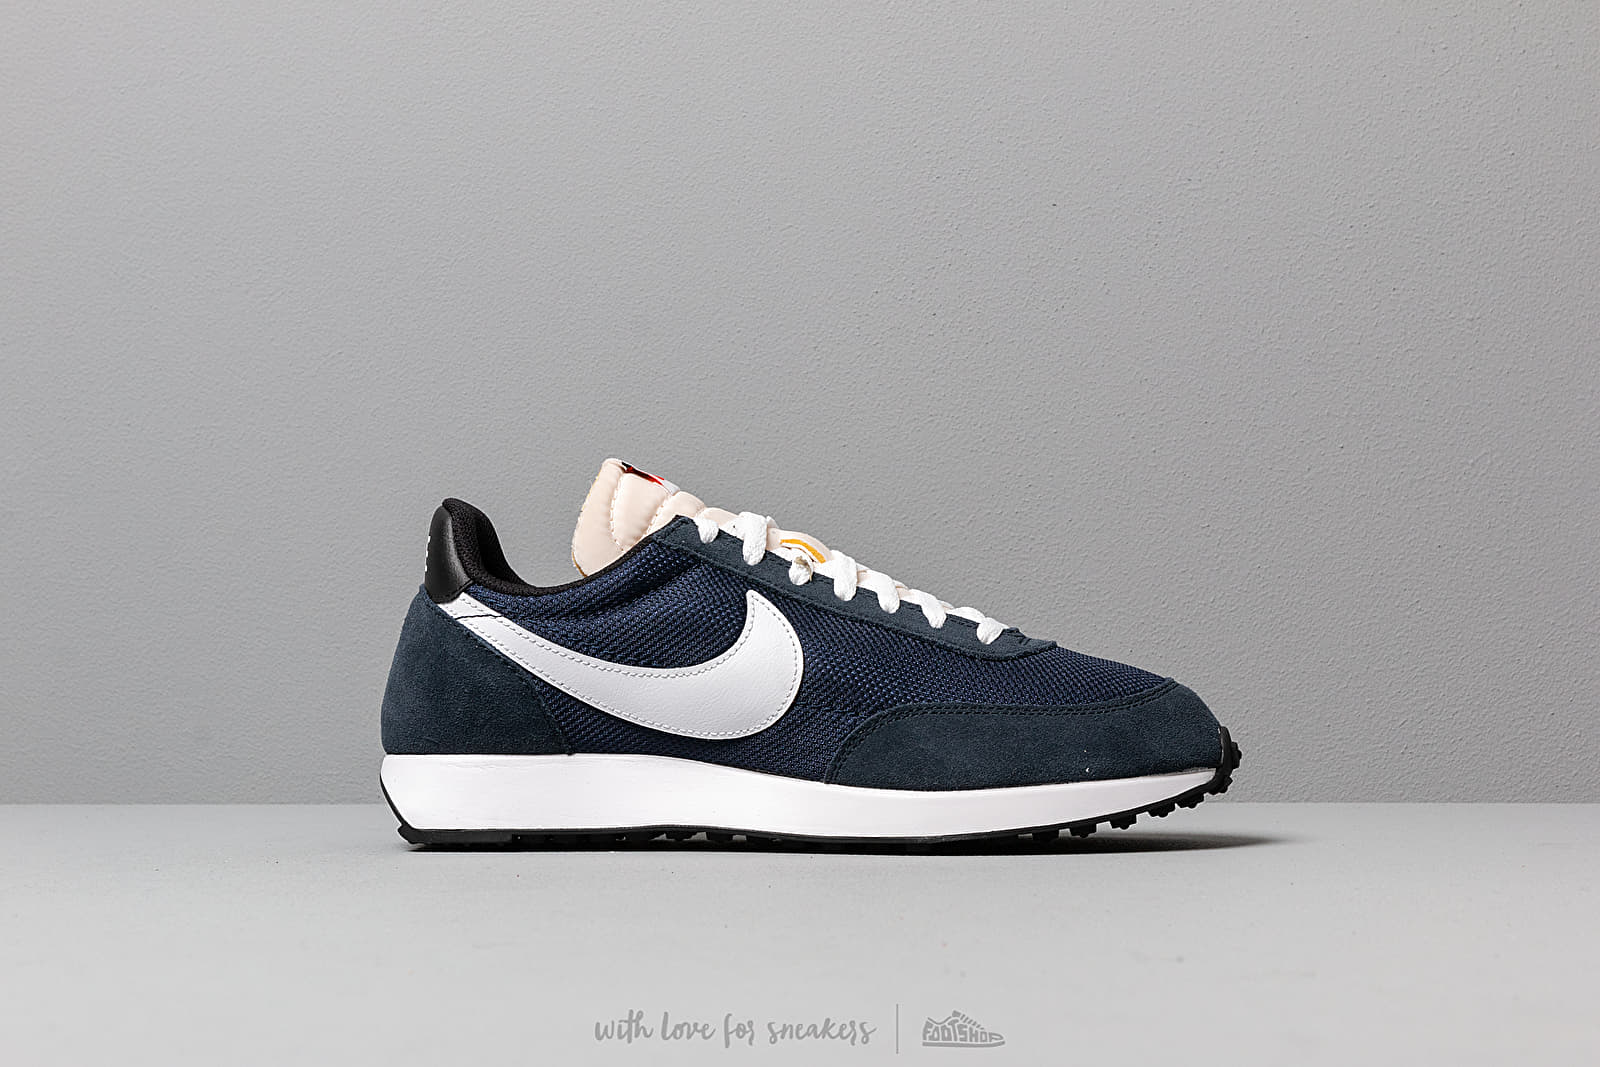 size 40 abf4b d266c Nike Air Tailwind 79 Dark Obsidian  White-Midnight Navy-Black at a great